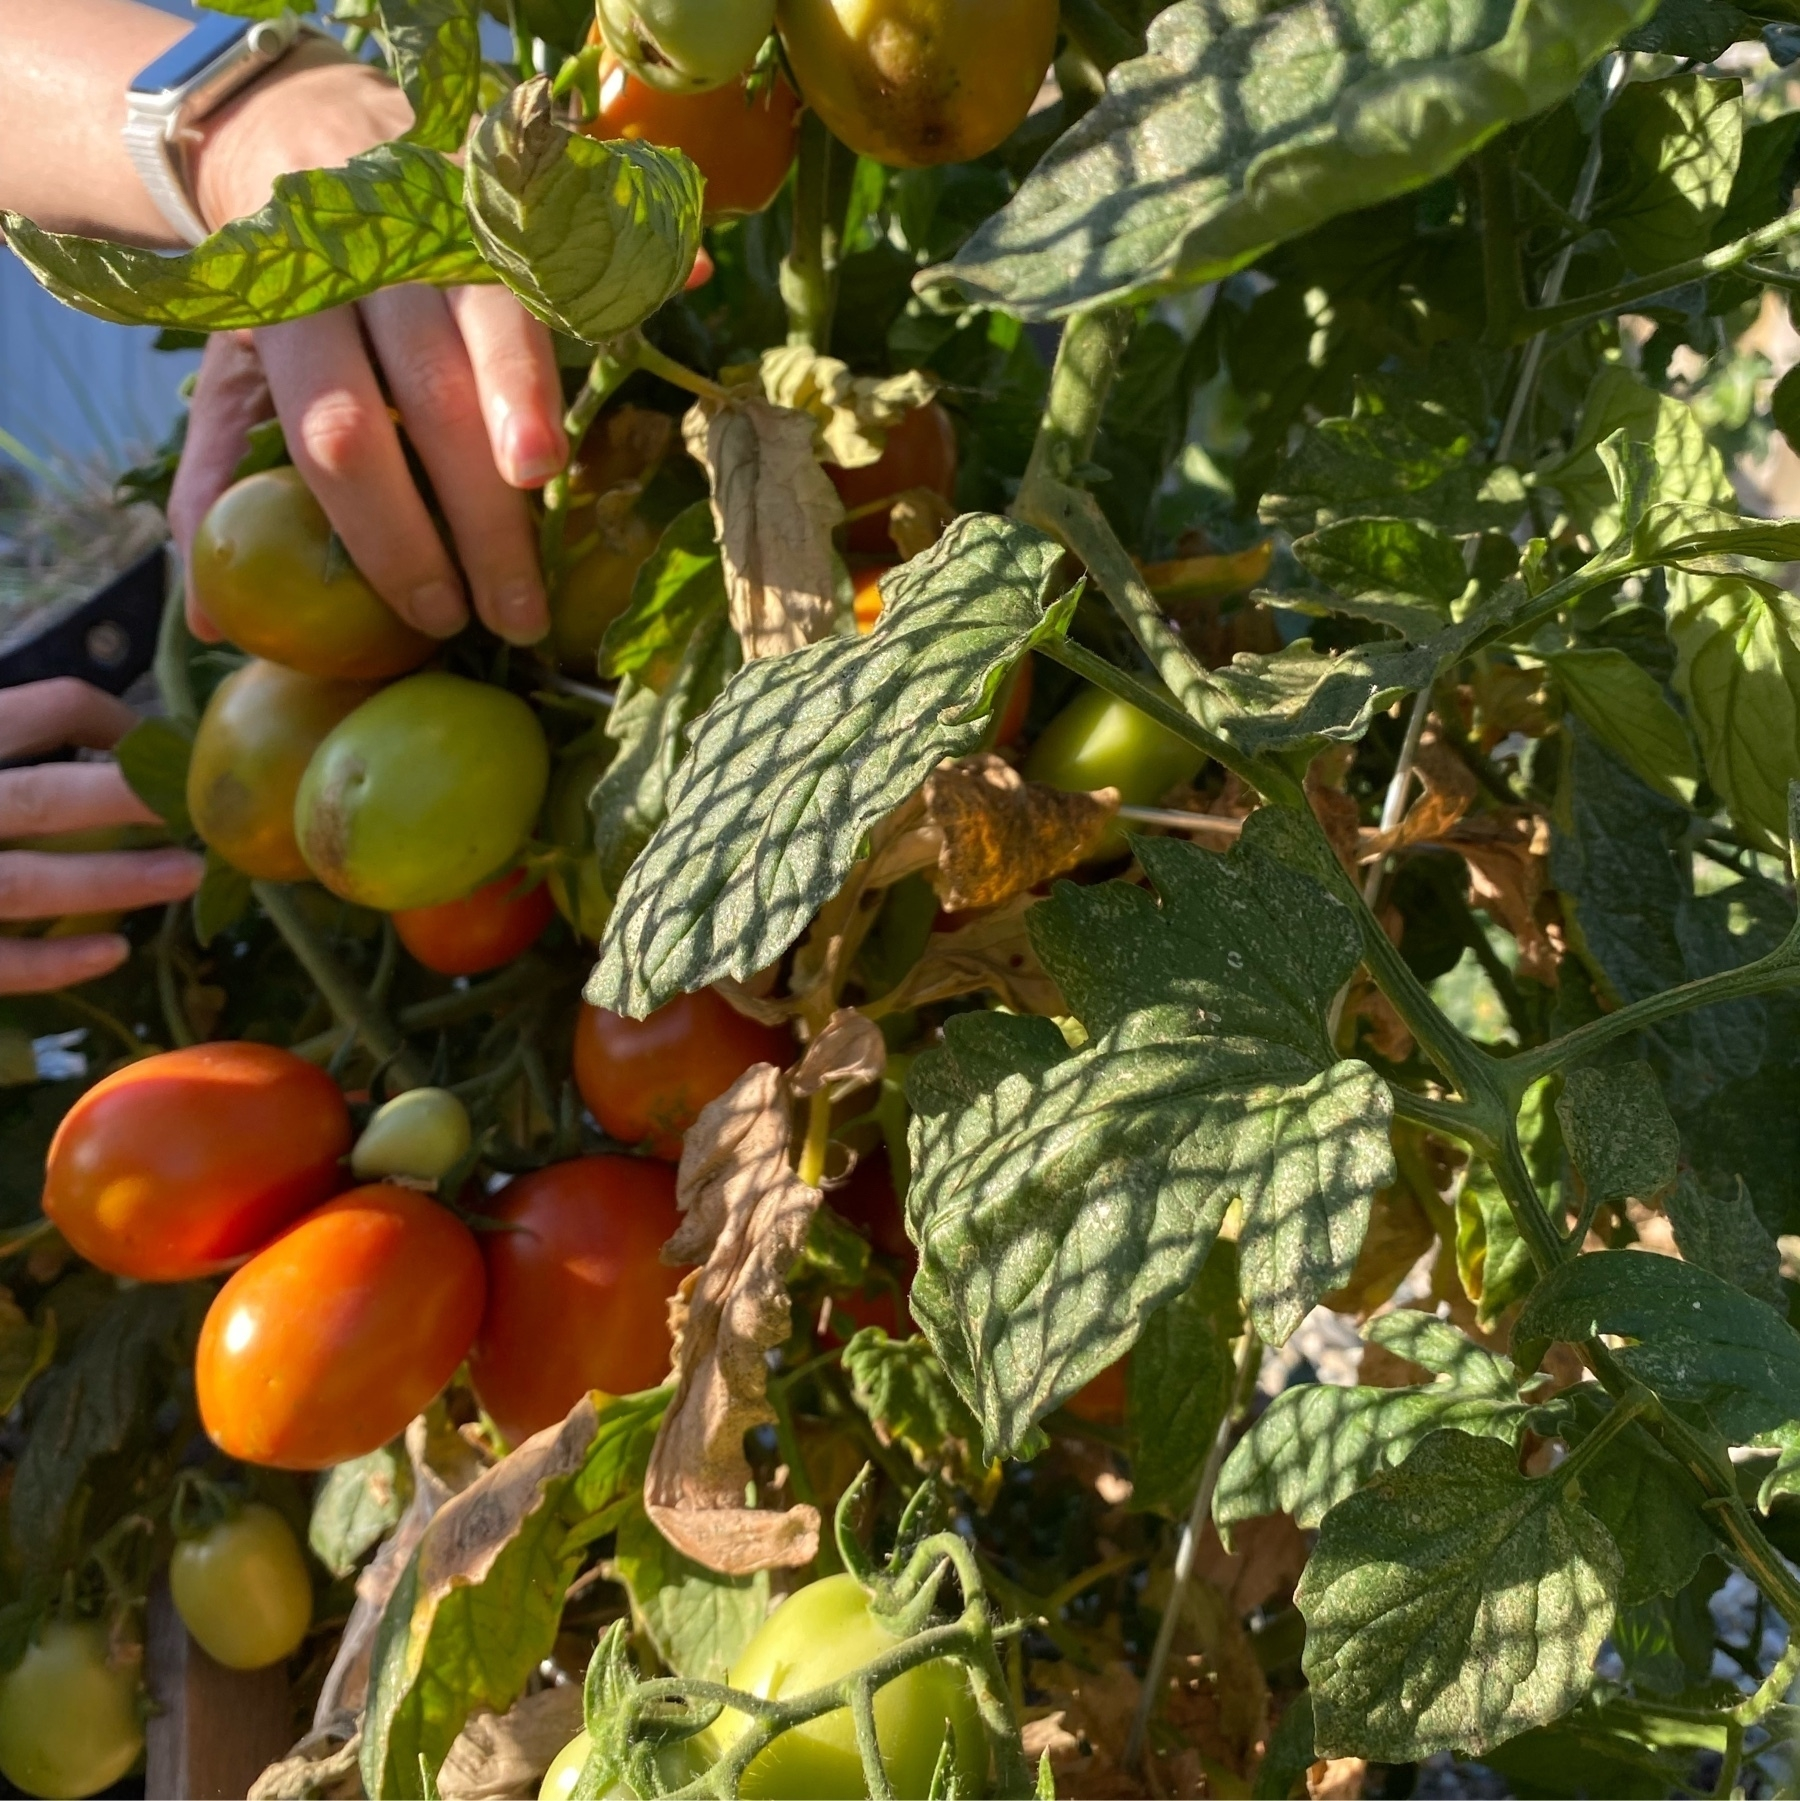 ripening tomatoes on a plant with human hand for scale